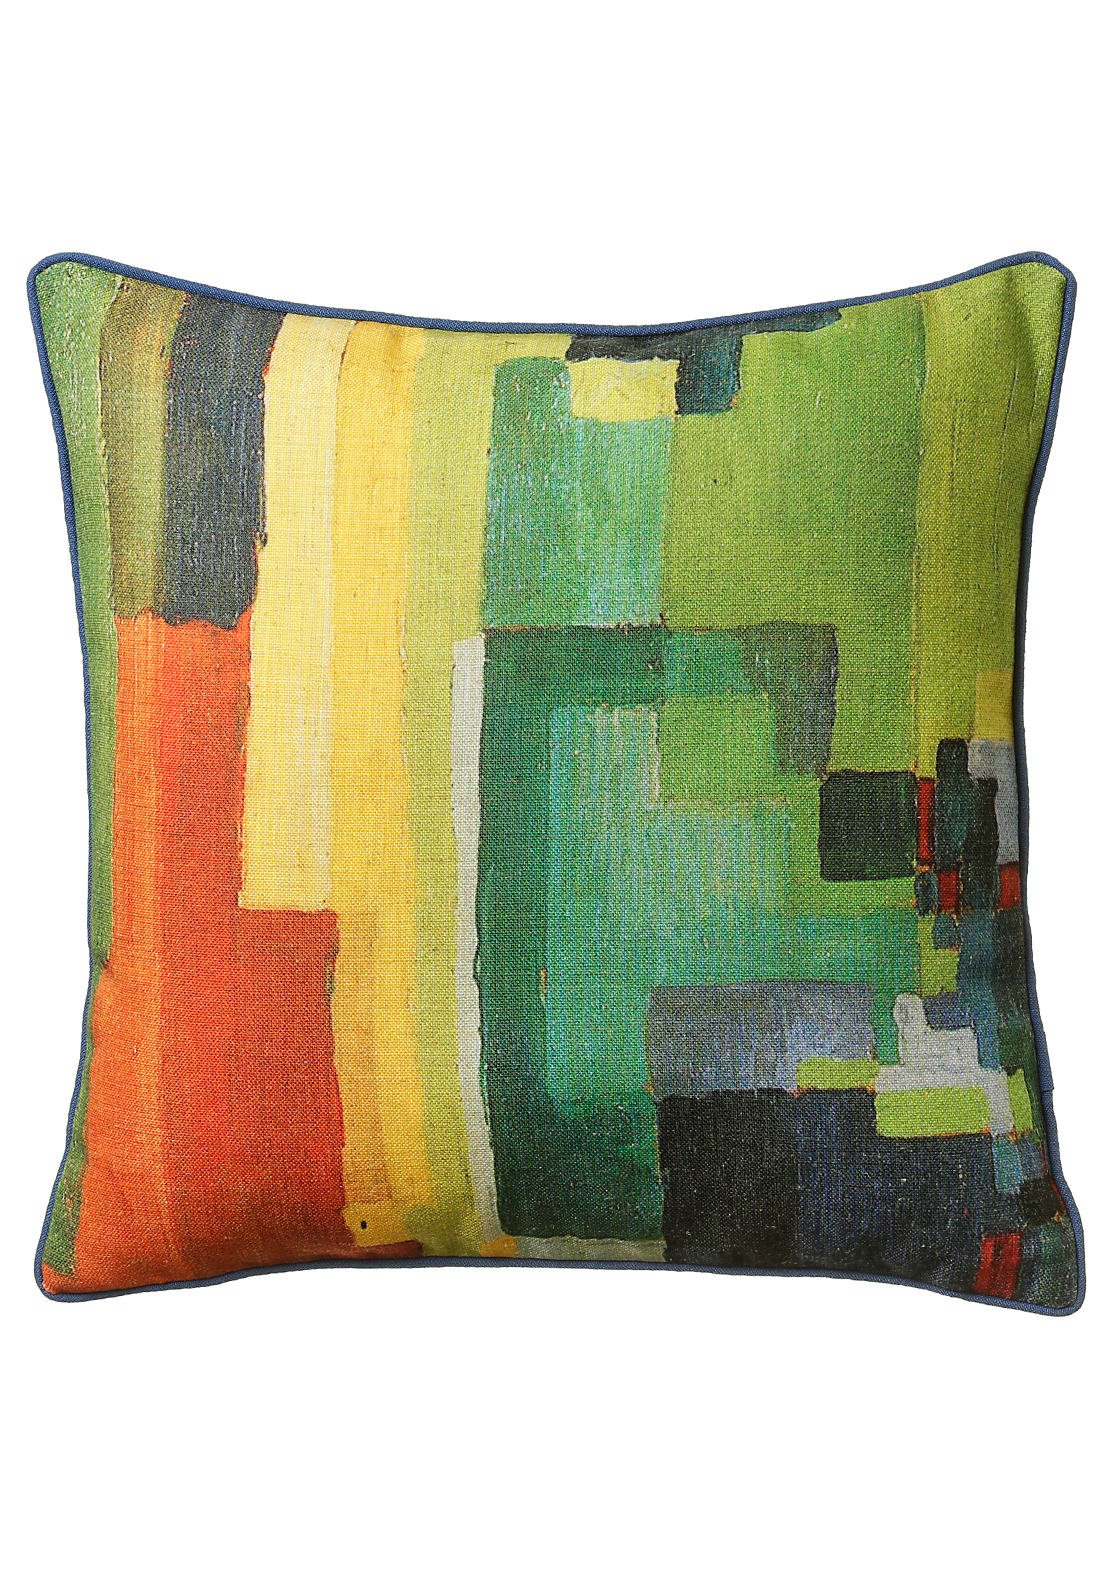 Scatterbox Perspective Cushion 45x45, Multi-Coloured